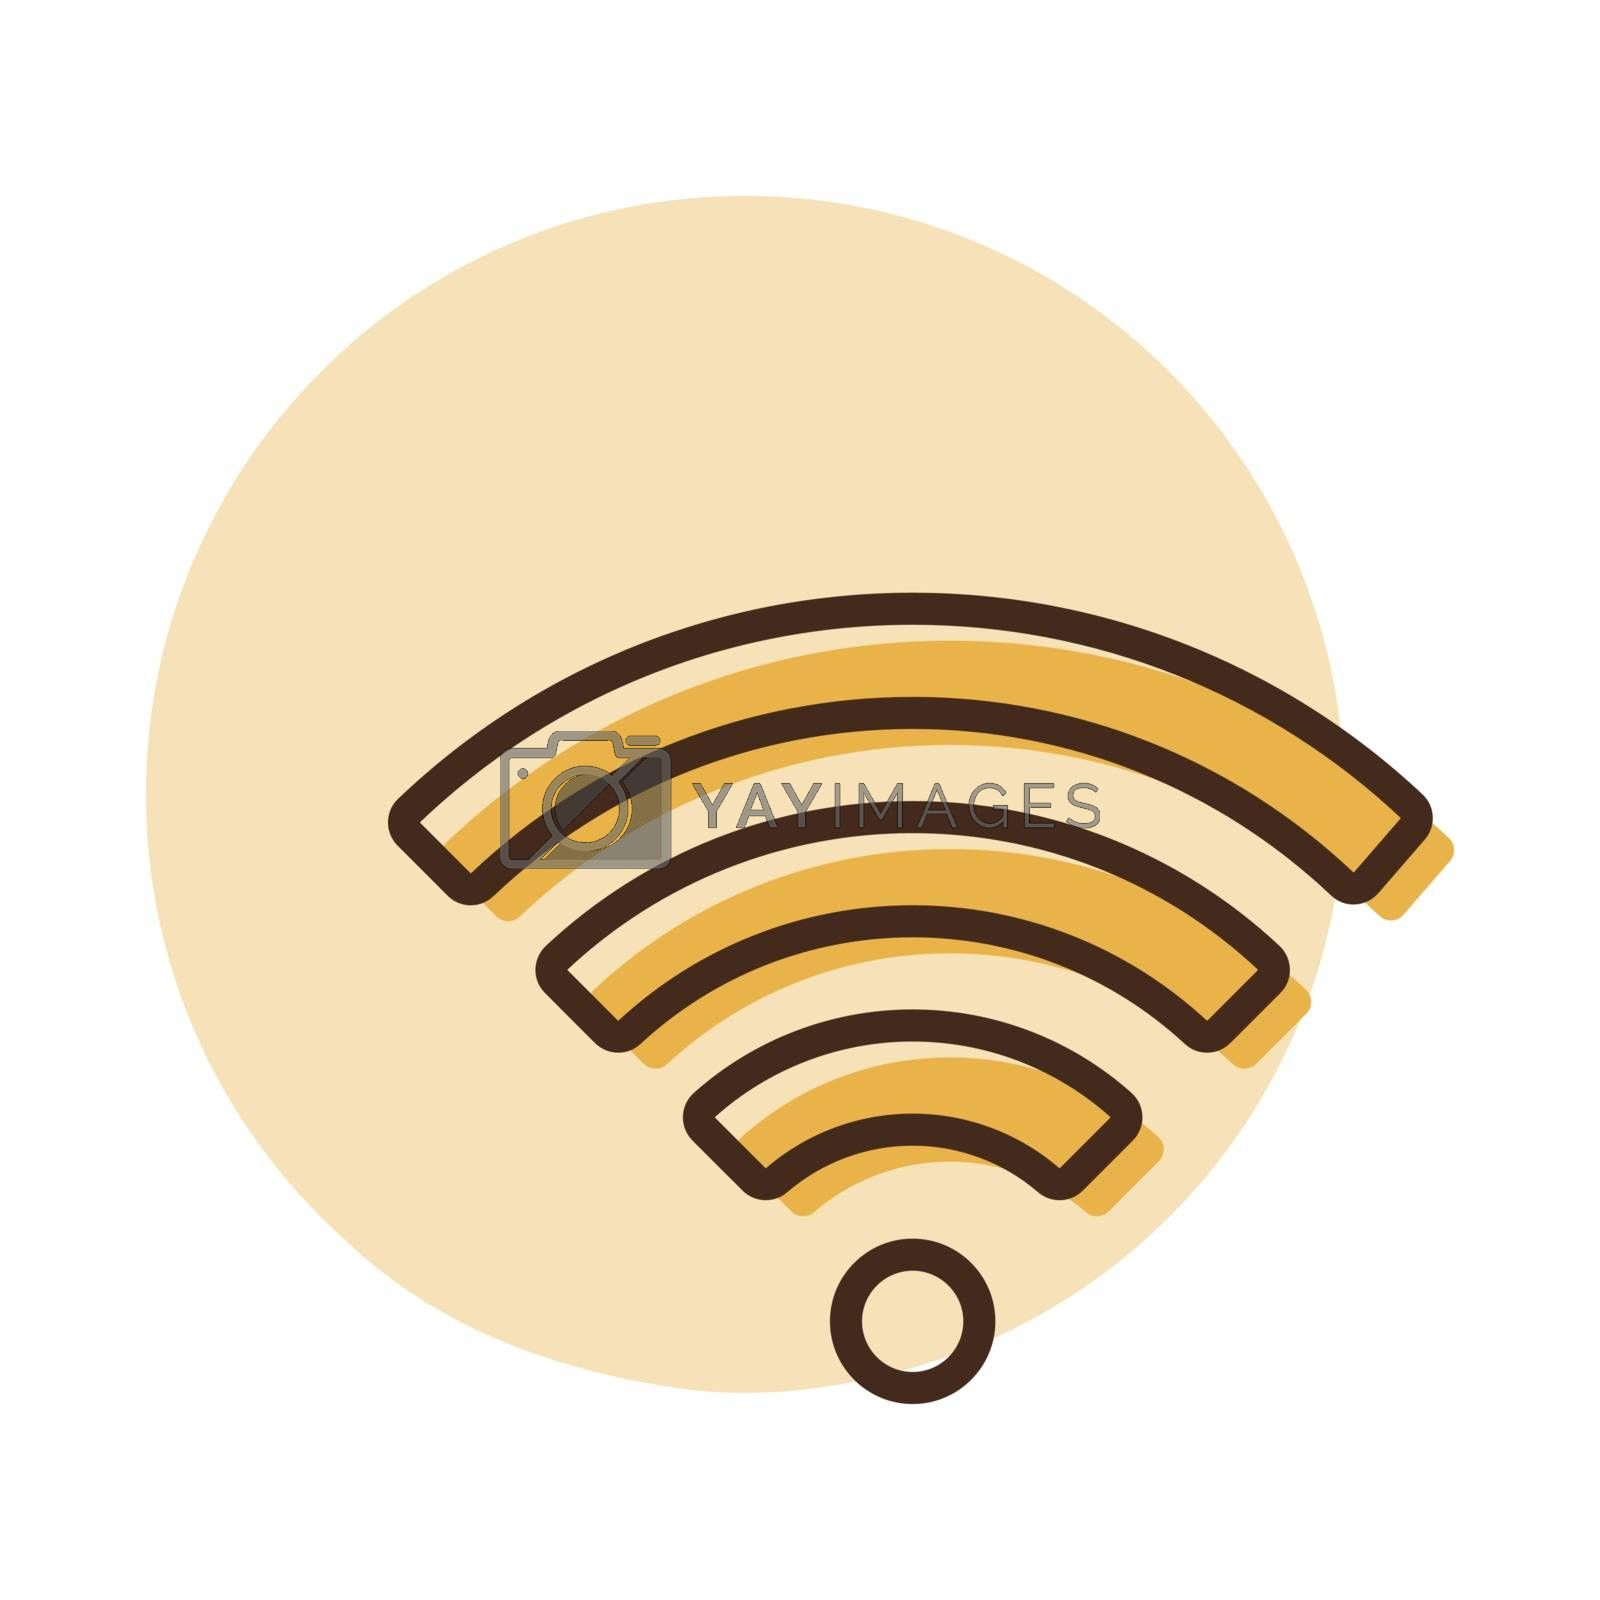 Wi Fi wireless network flat vector icon. Graph symbol for telecommunication web site and apps design, logo, app, UI